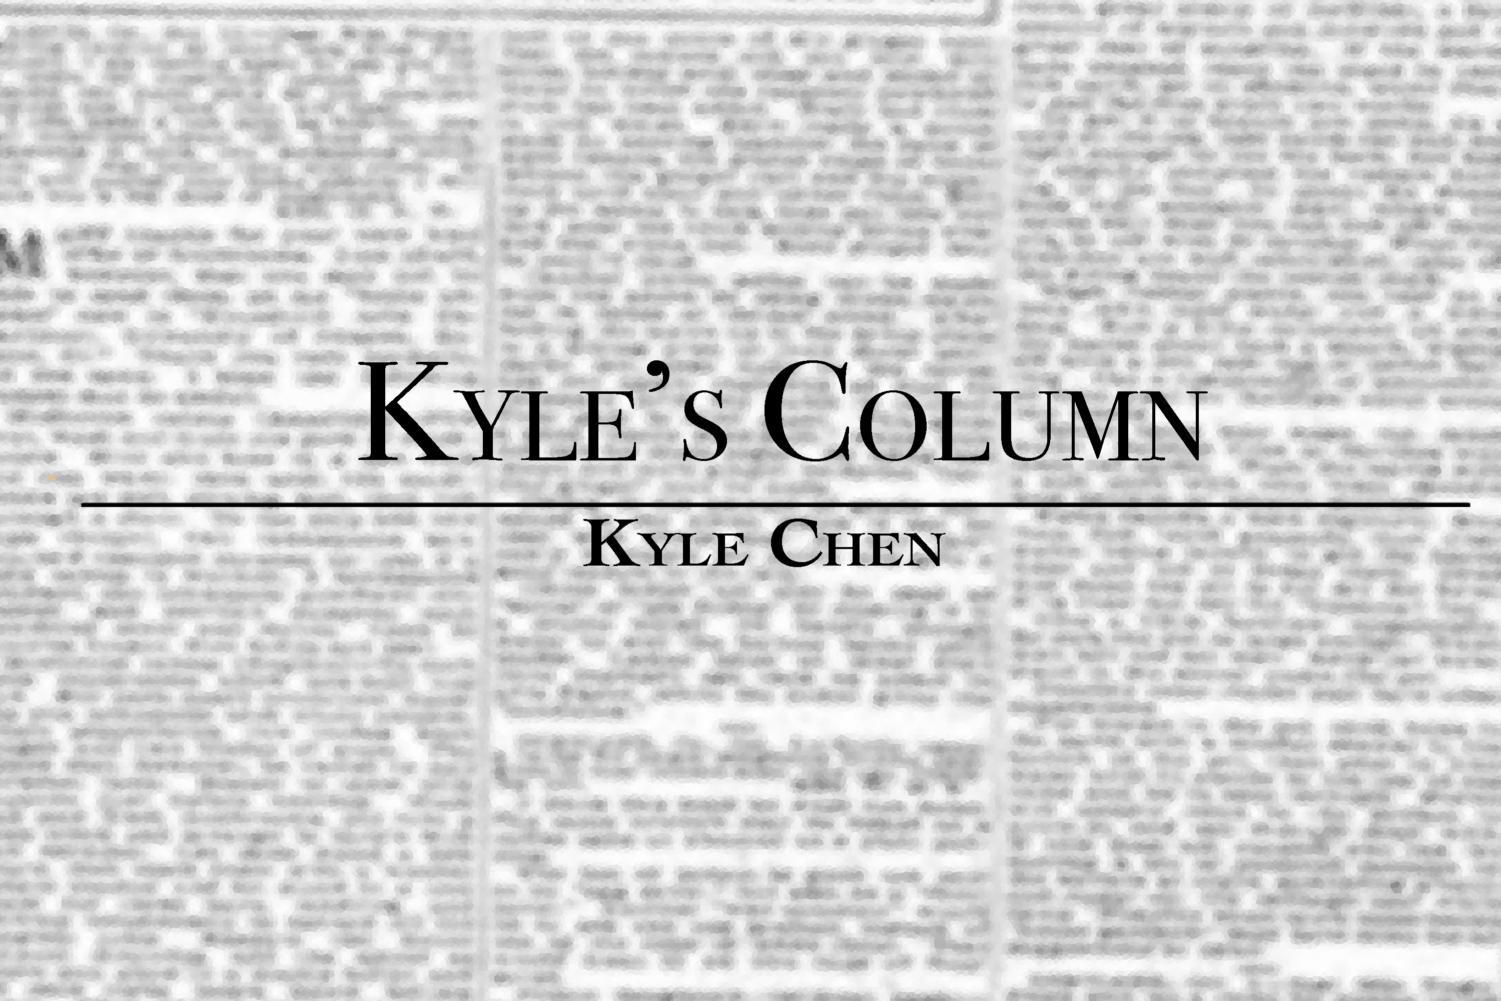 In the latest installment of Kyle's Column, Opinions Editor Kyle Chen discusses the underlying implications behind the Wayland School Committee's vote to push back school start times for the 2019-2020 school year.